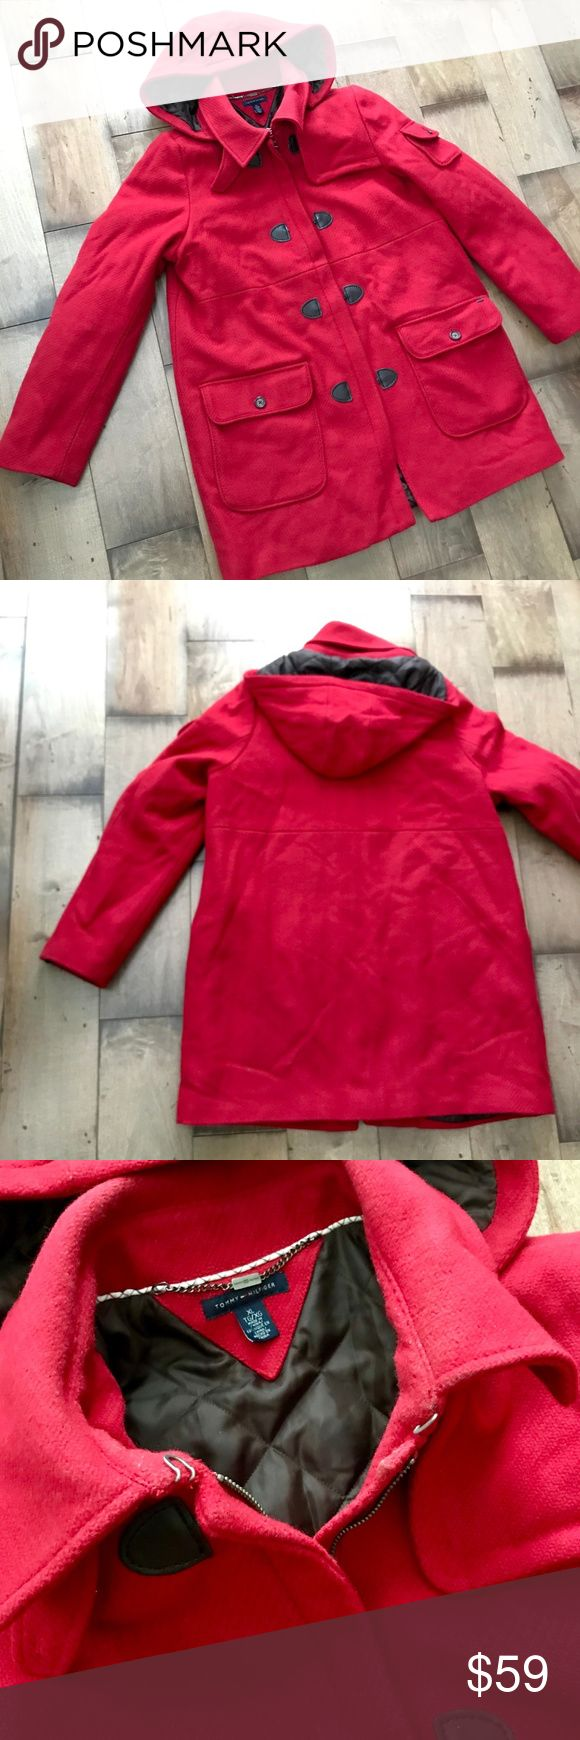 Tommy Hilfiger Wool Coat Red Jacket Hooded XL Red jacket